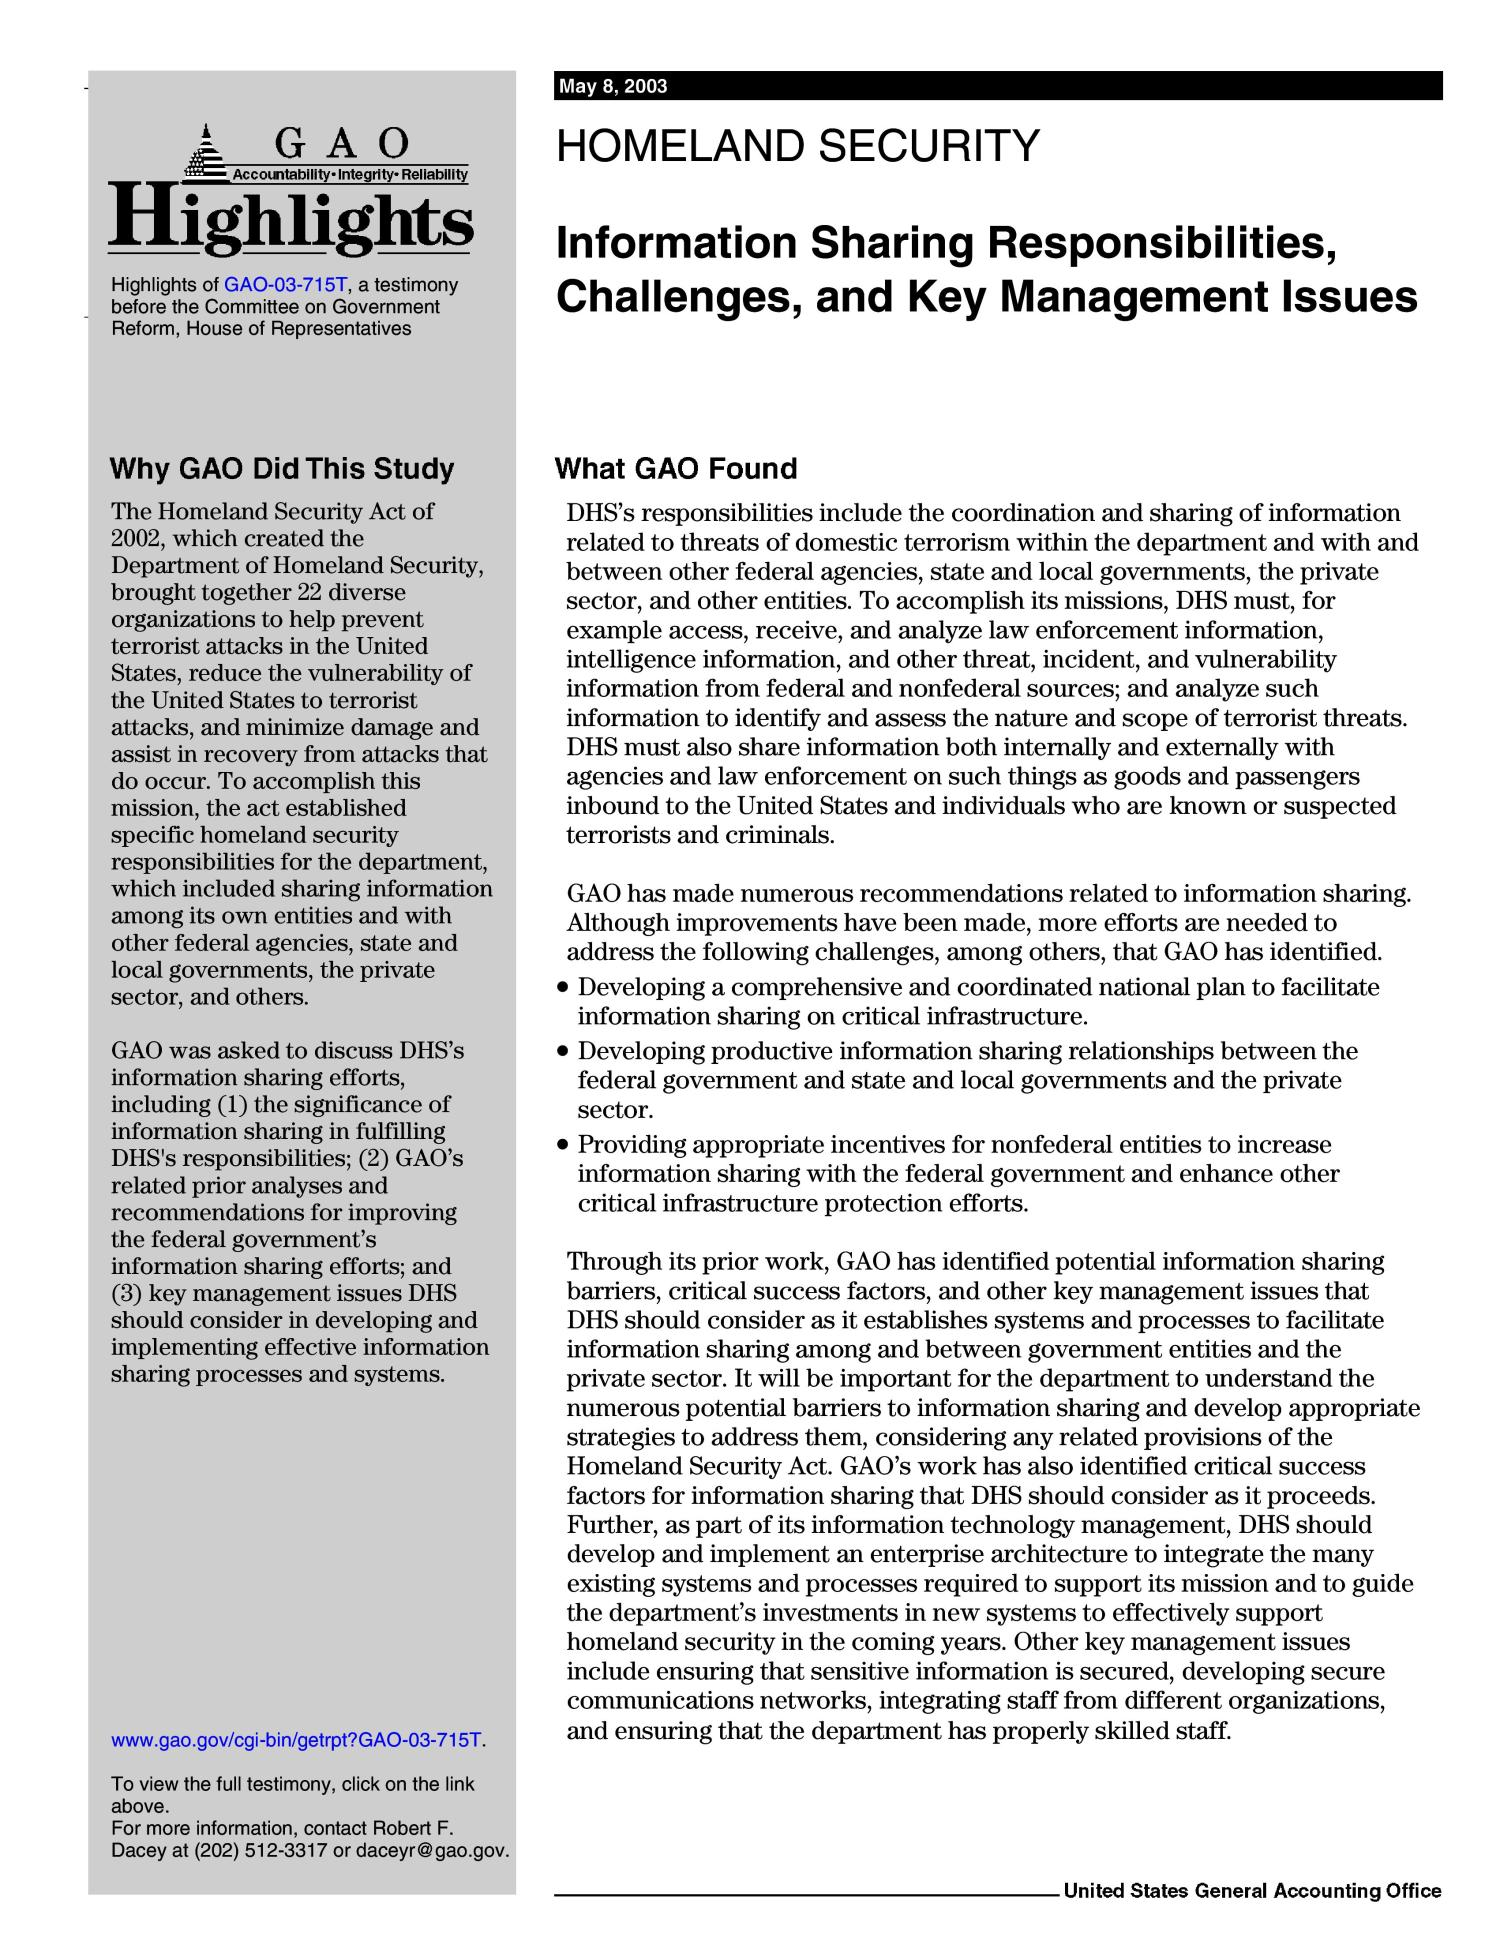 Homeland Security: Information Sharing Responsibilities, Challenges, and Key Management Issues                                                                                                      [Sequence #]: 3 of 53